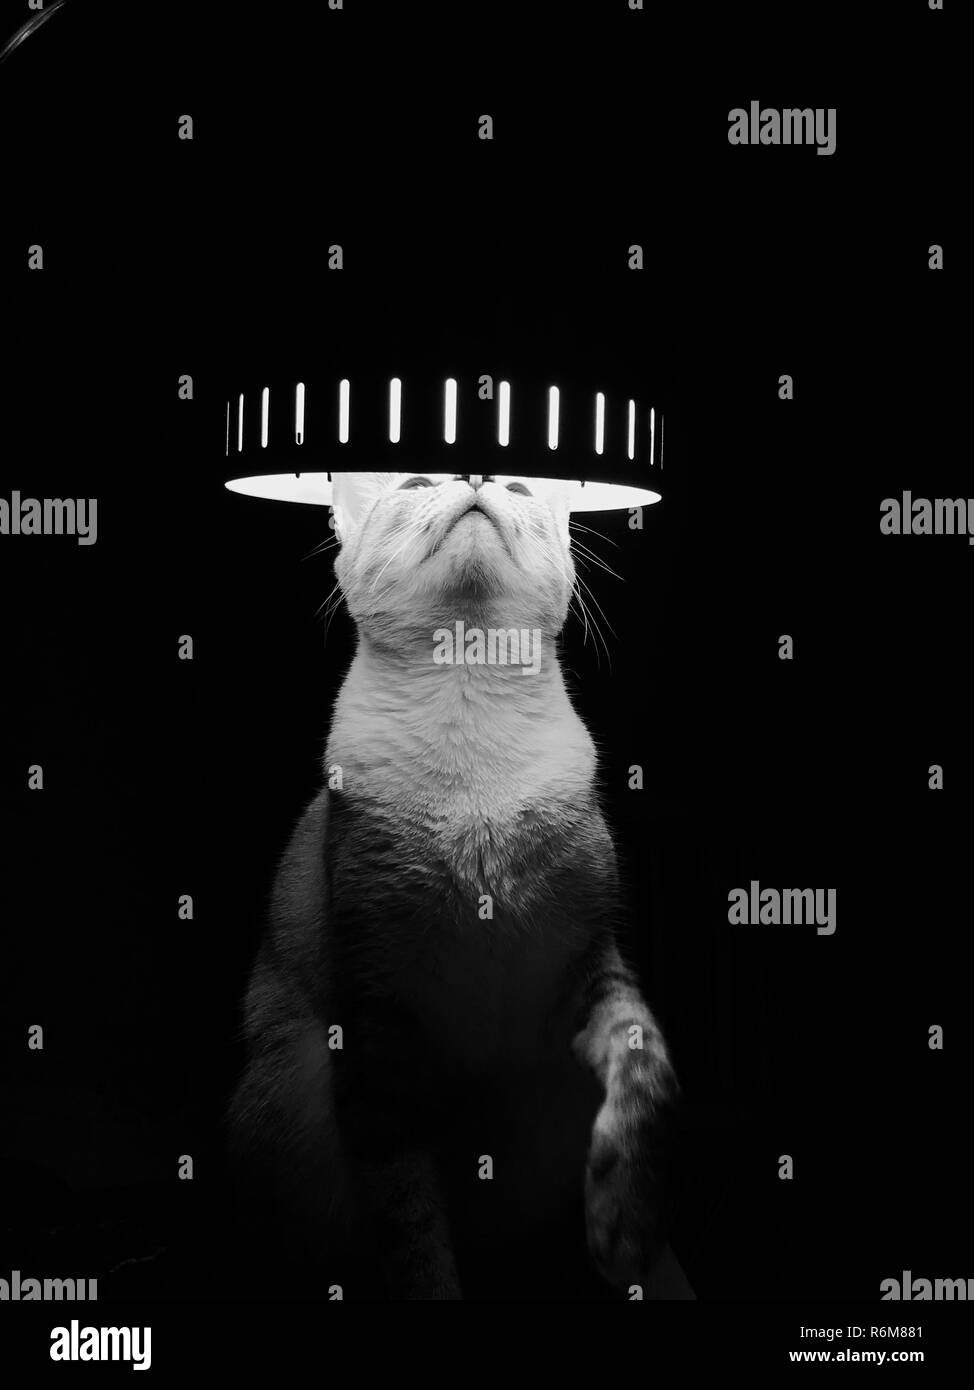 Cat Light - Stock Image